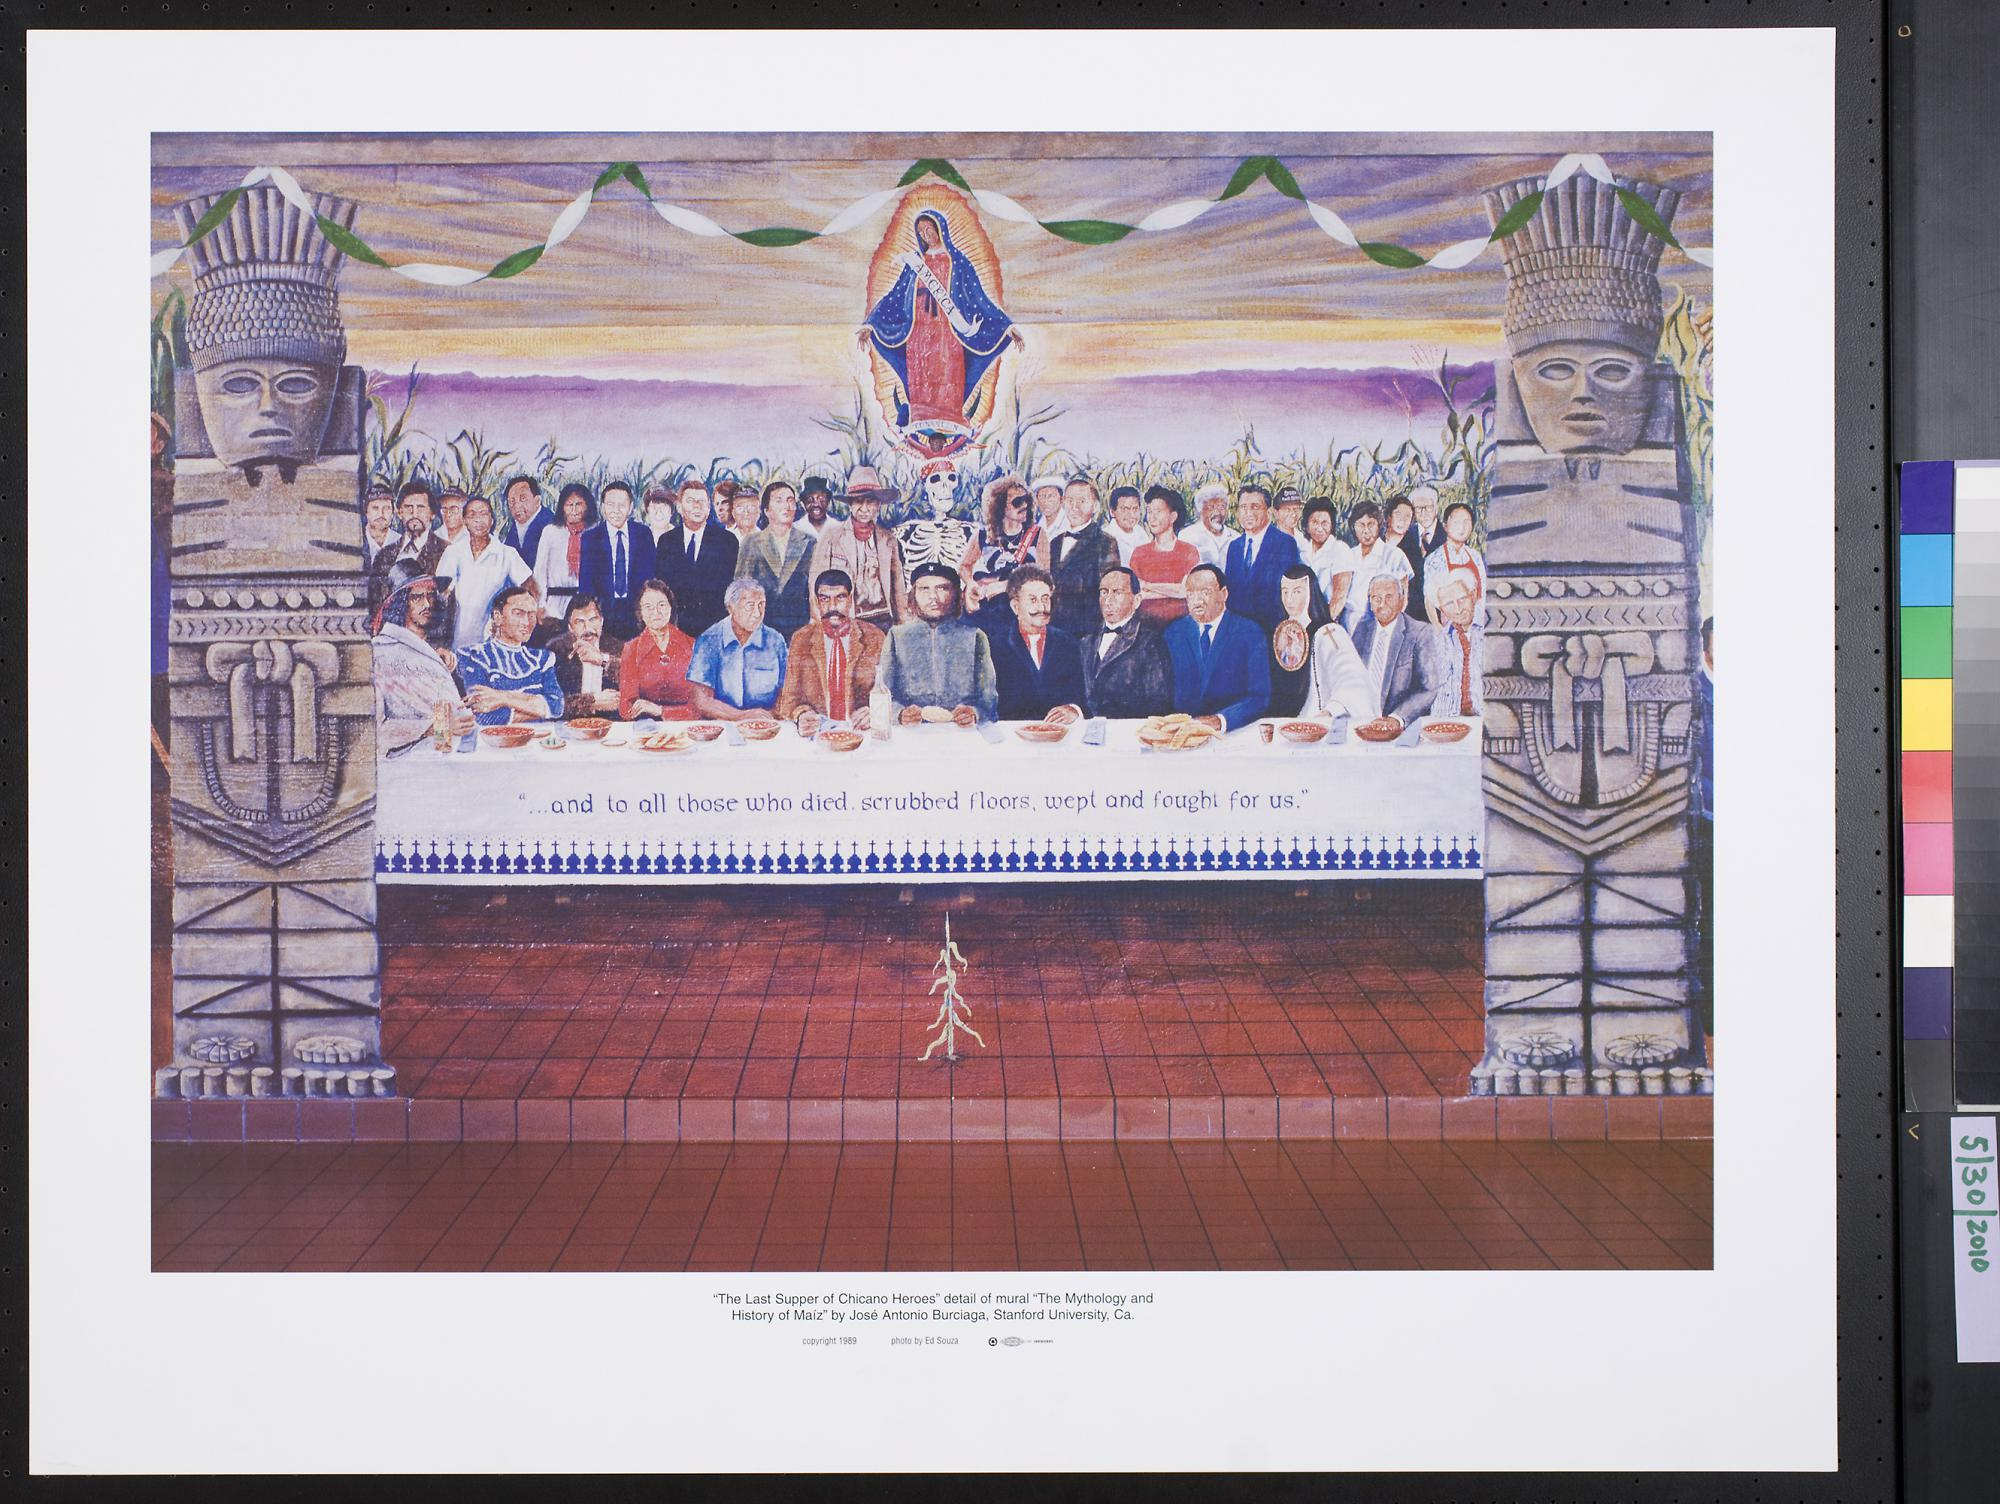 Omca collections - American history x dinner table scene ...